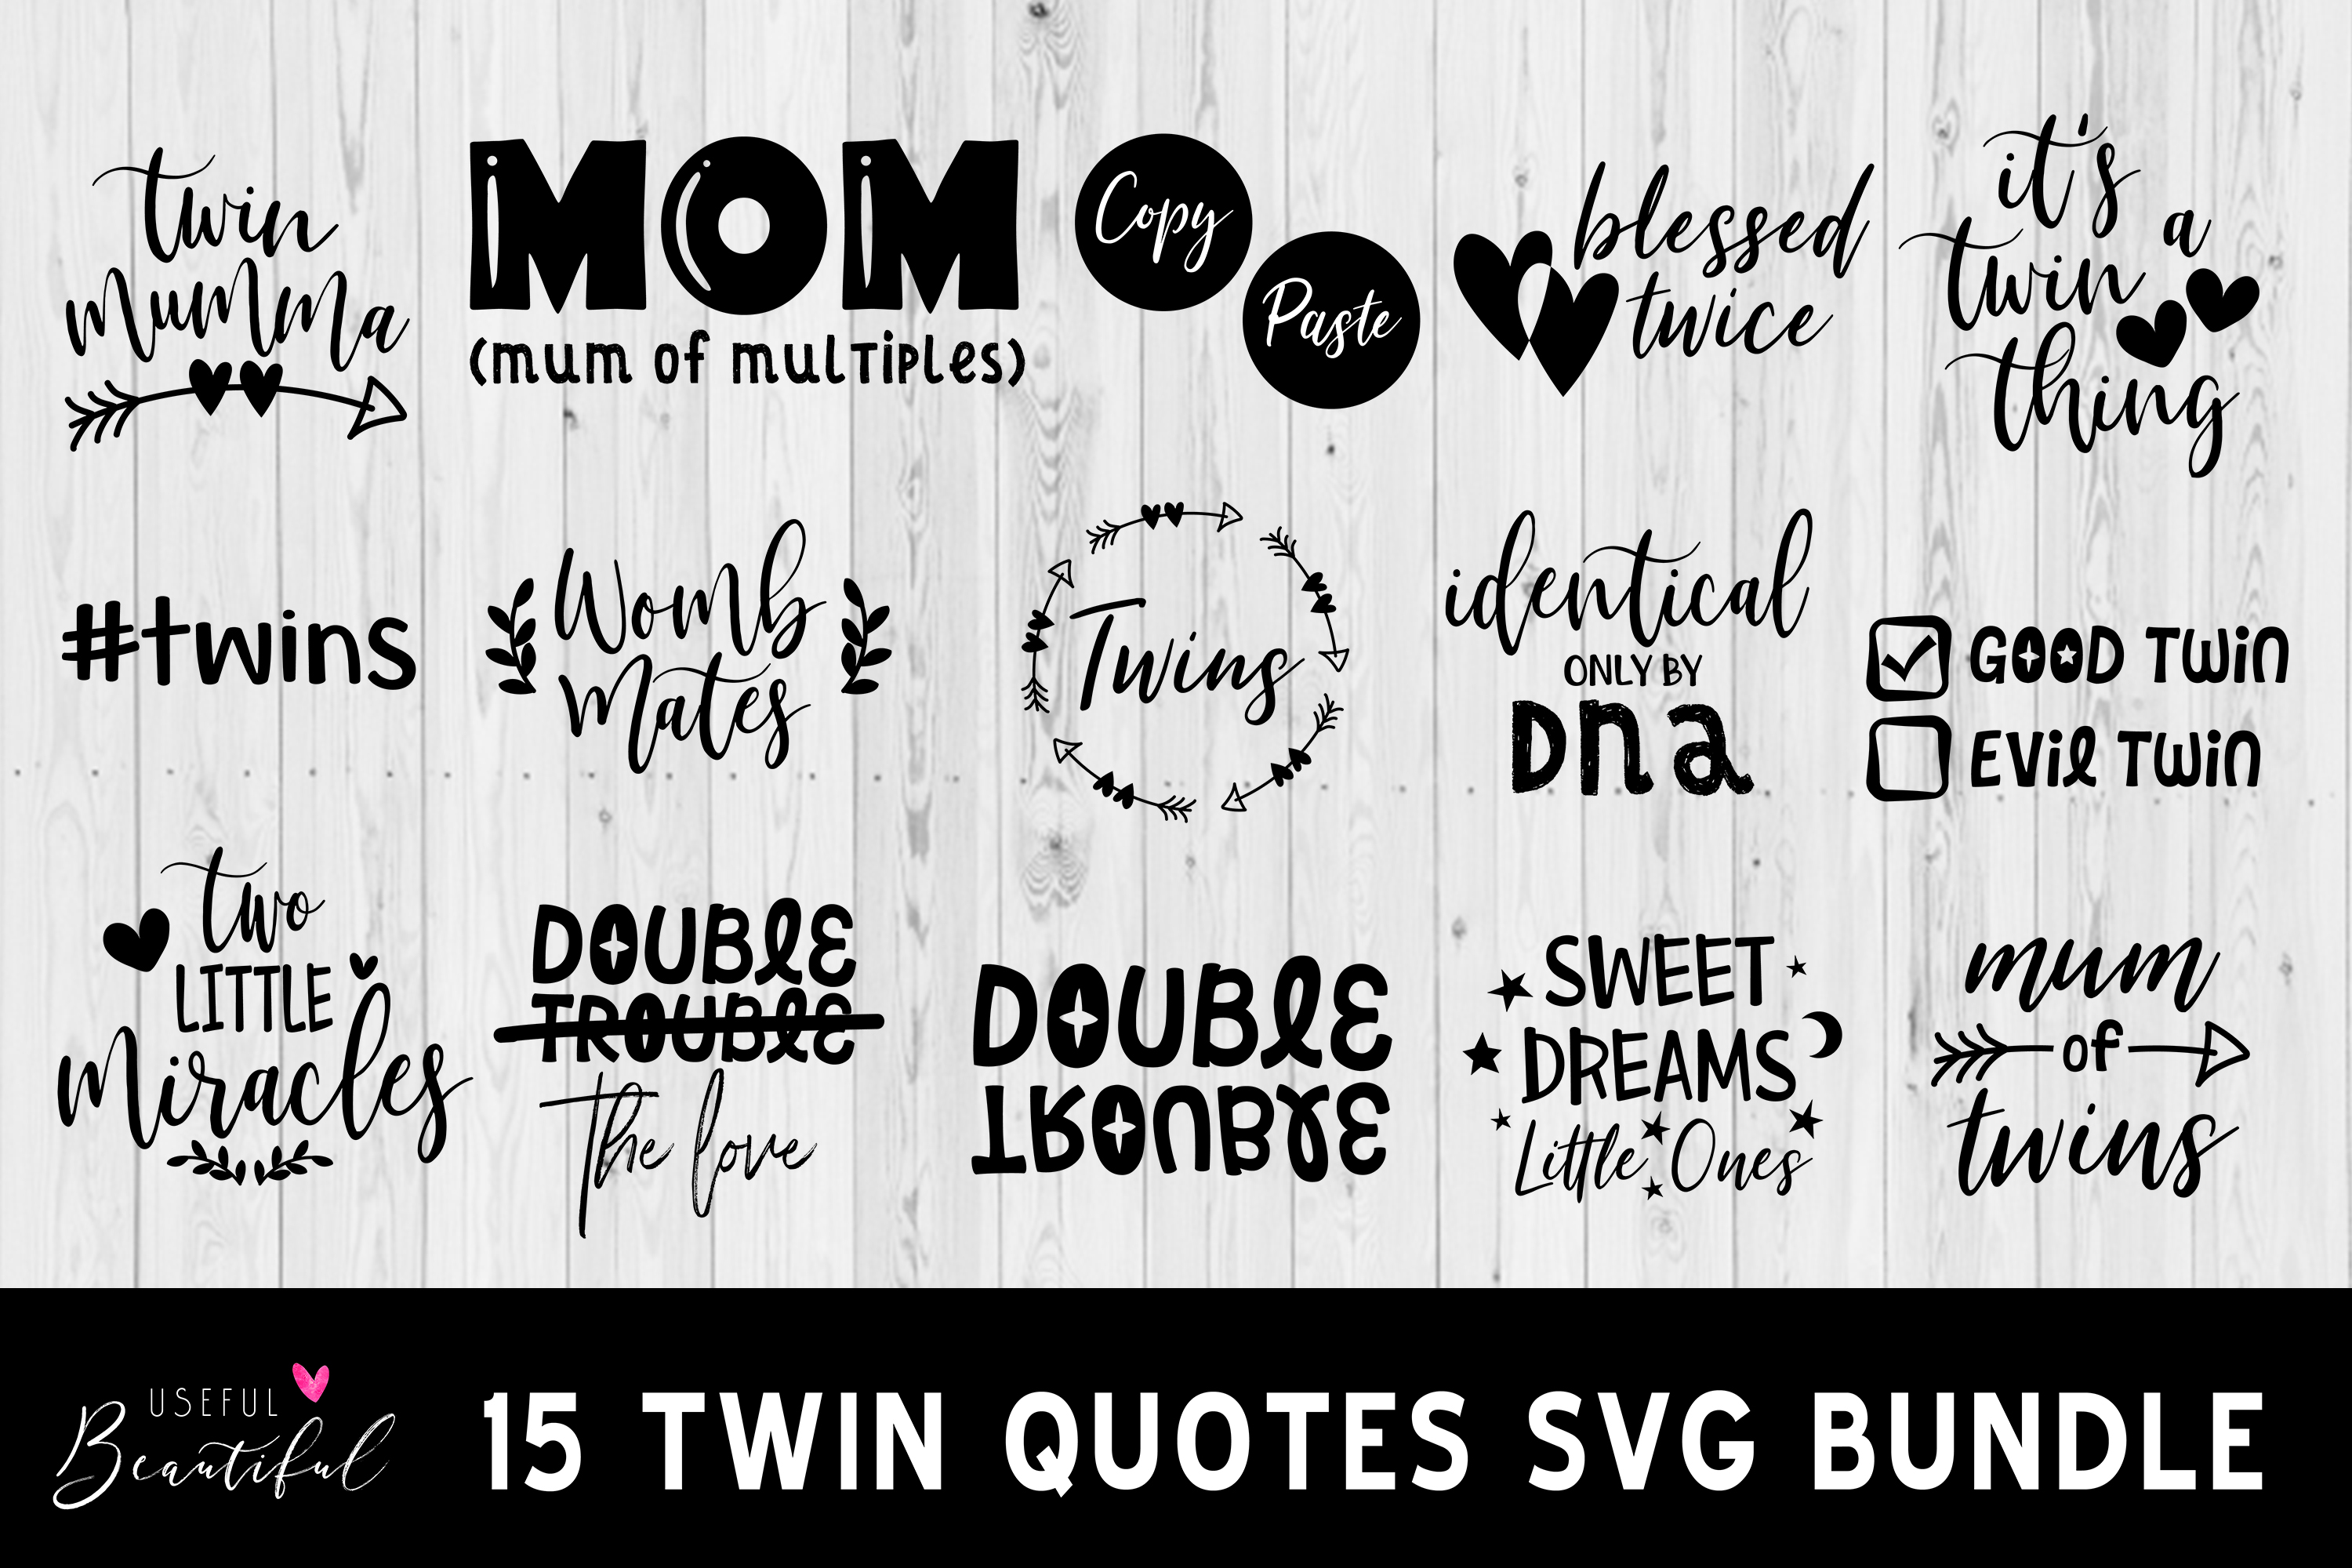 Download Free Twin Quote Bundle Graphic By Usefulbeautiful Creative Fabrica for Cricut Explore, Silhouette and other cutting machines.